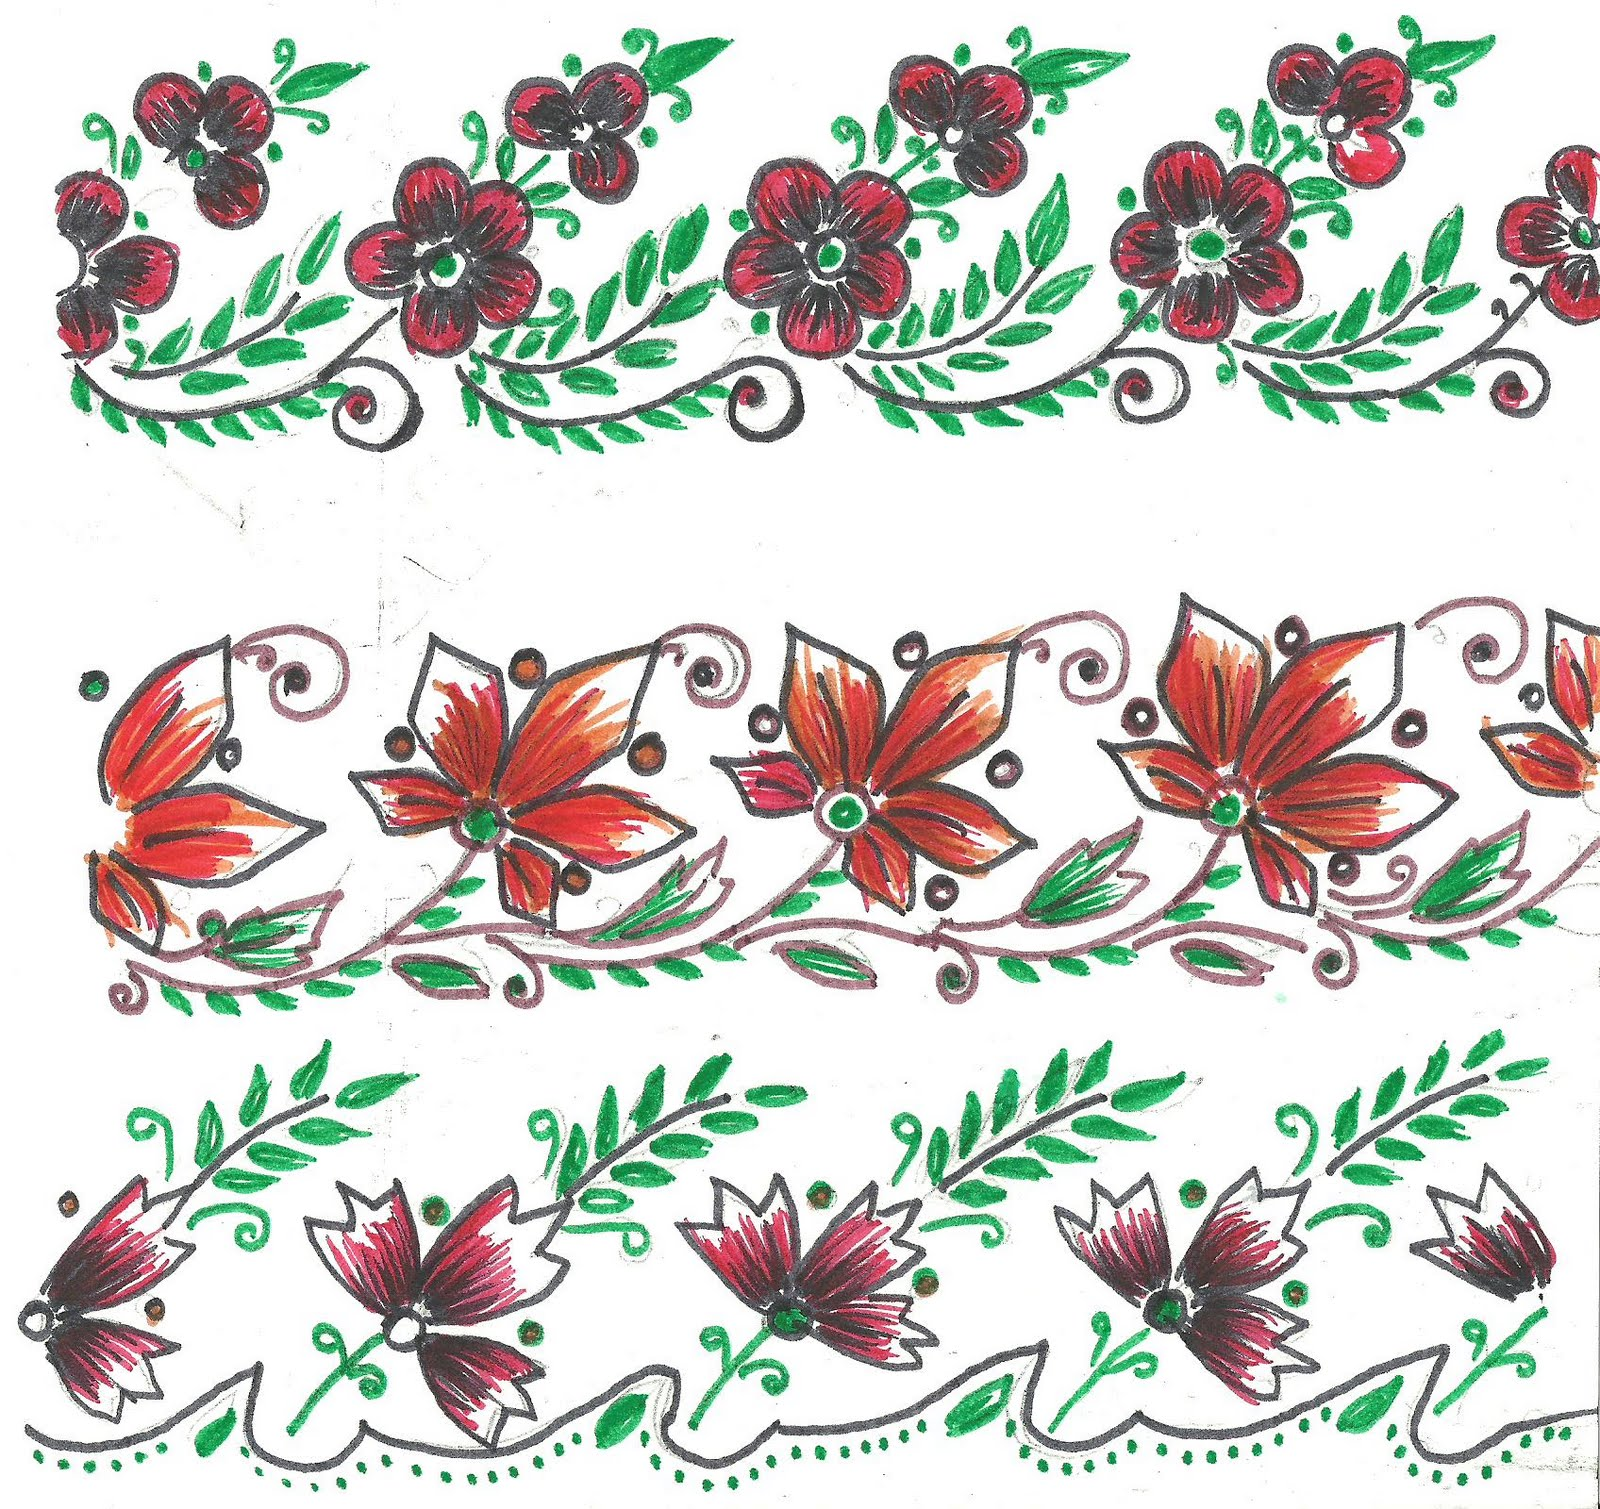 Embroidery Designs for Sarees Border http://artcraftetc.blogspot.com/p/fabric-paint.html